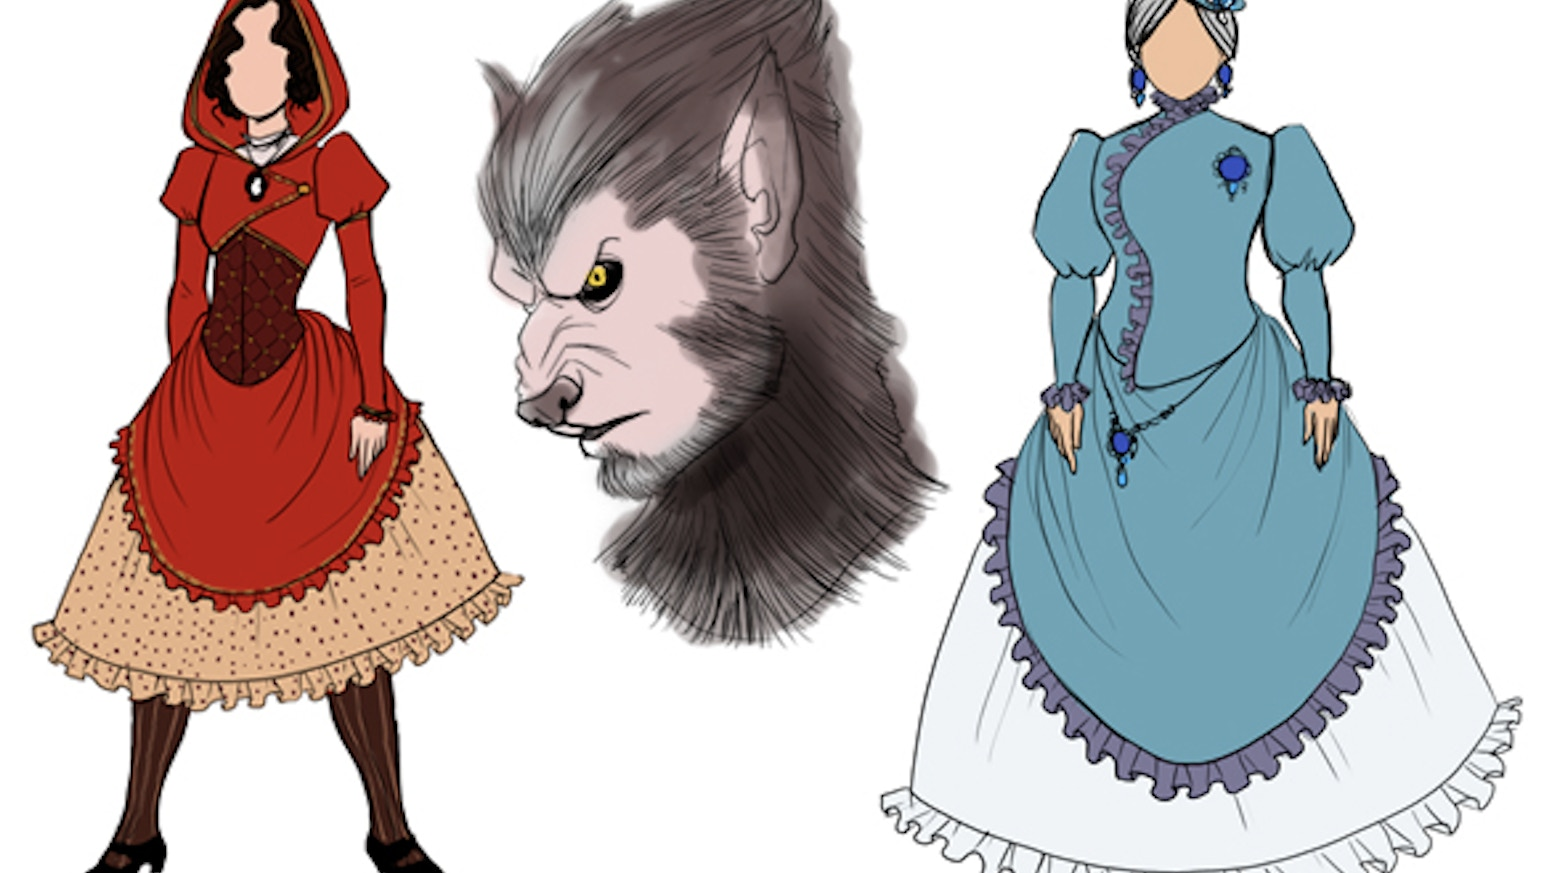 Costume Design Little Red Riding Hood By Alysa Avery Deleted